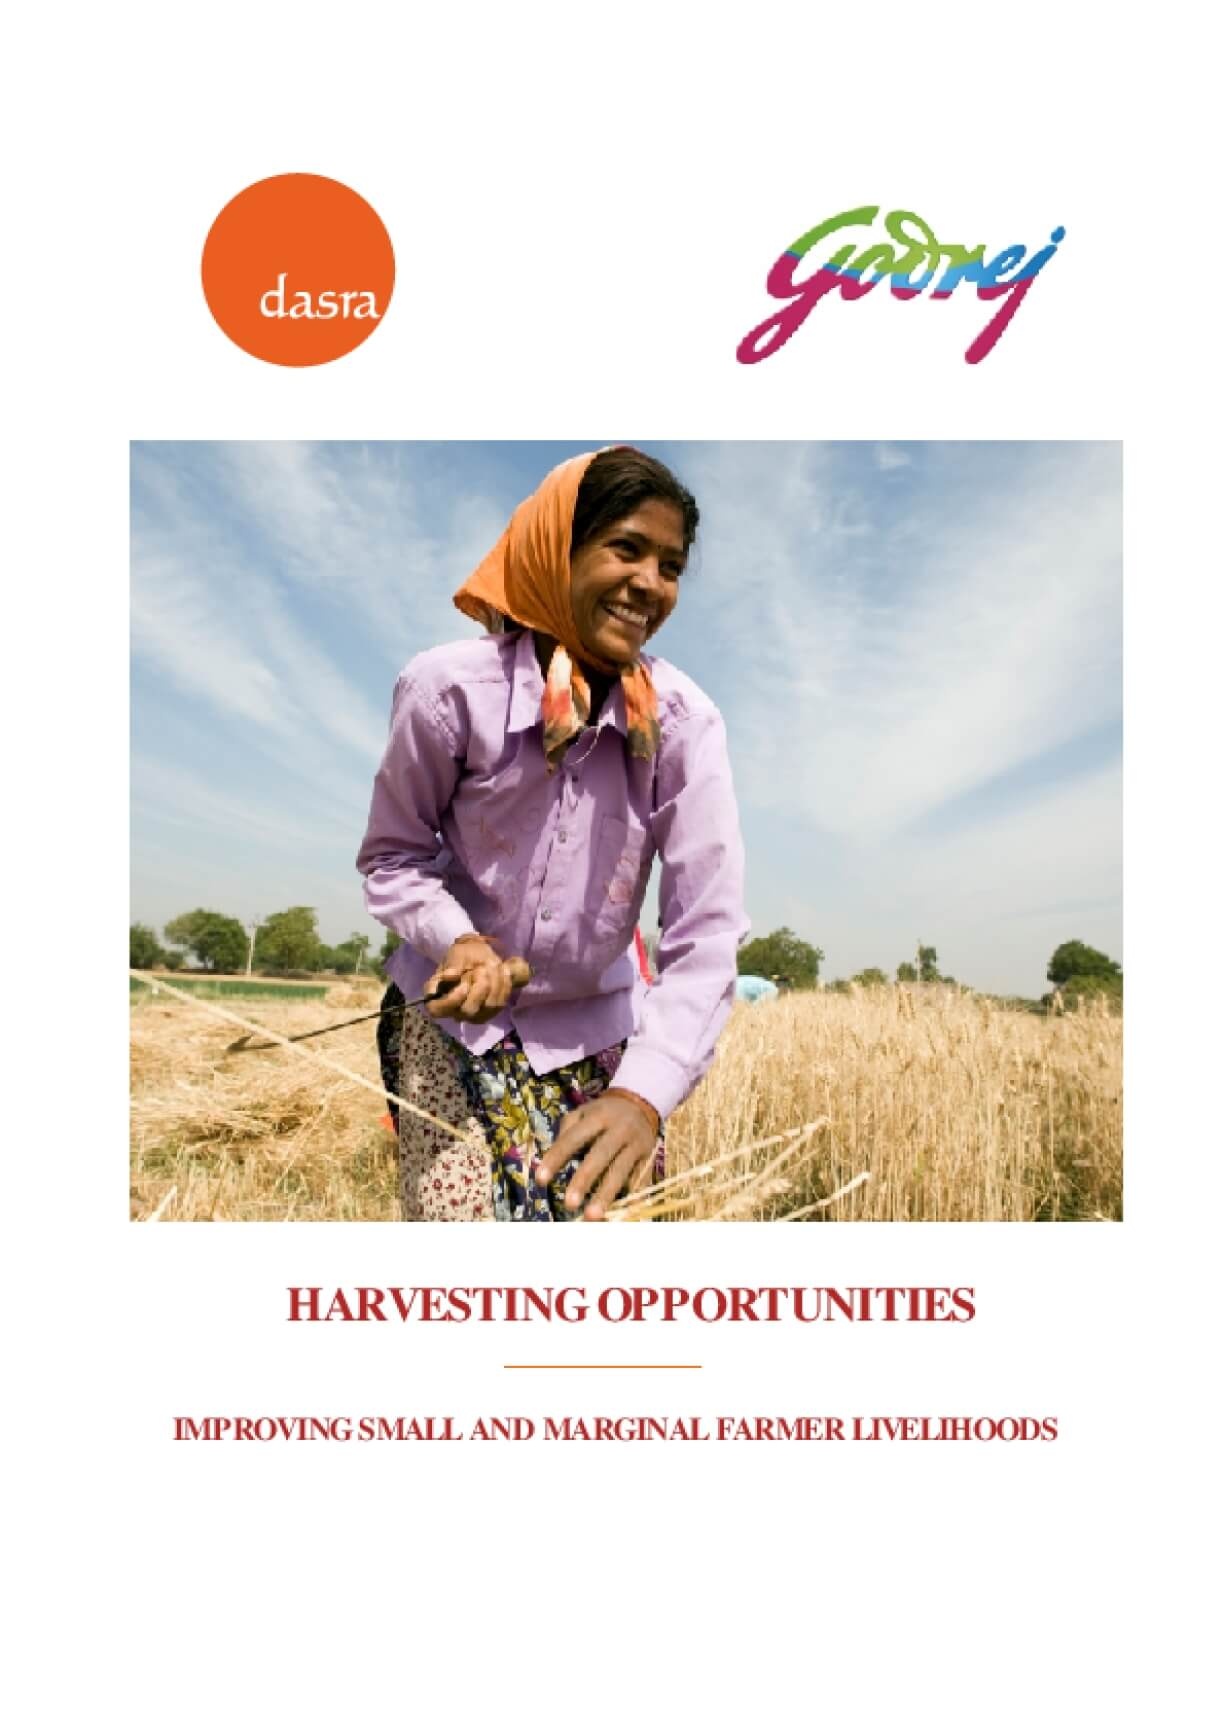 Harvesting Opportunities: Improving Small and Marginal Farmer Livelihoods